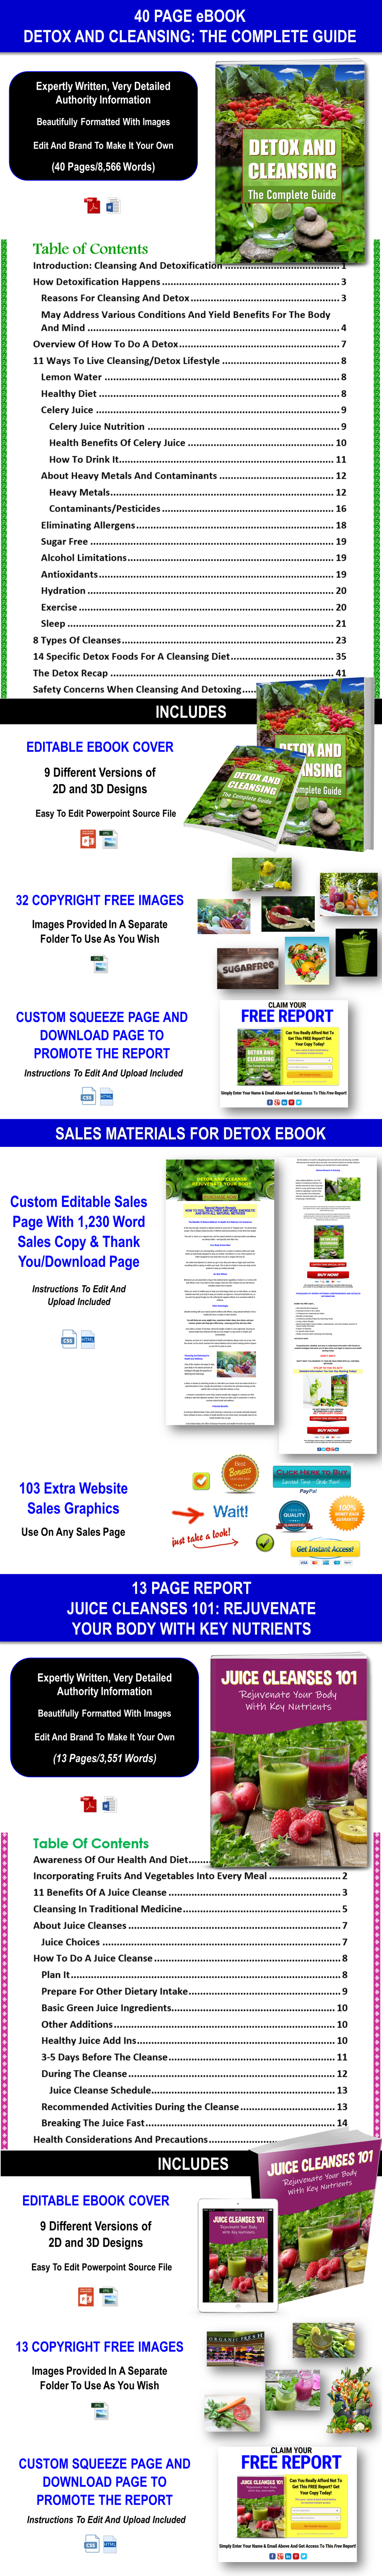 Detox and Cleanse Content with PLR Rights